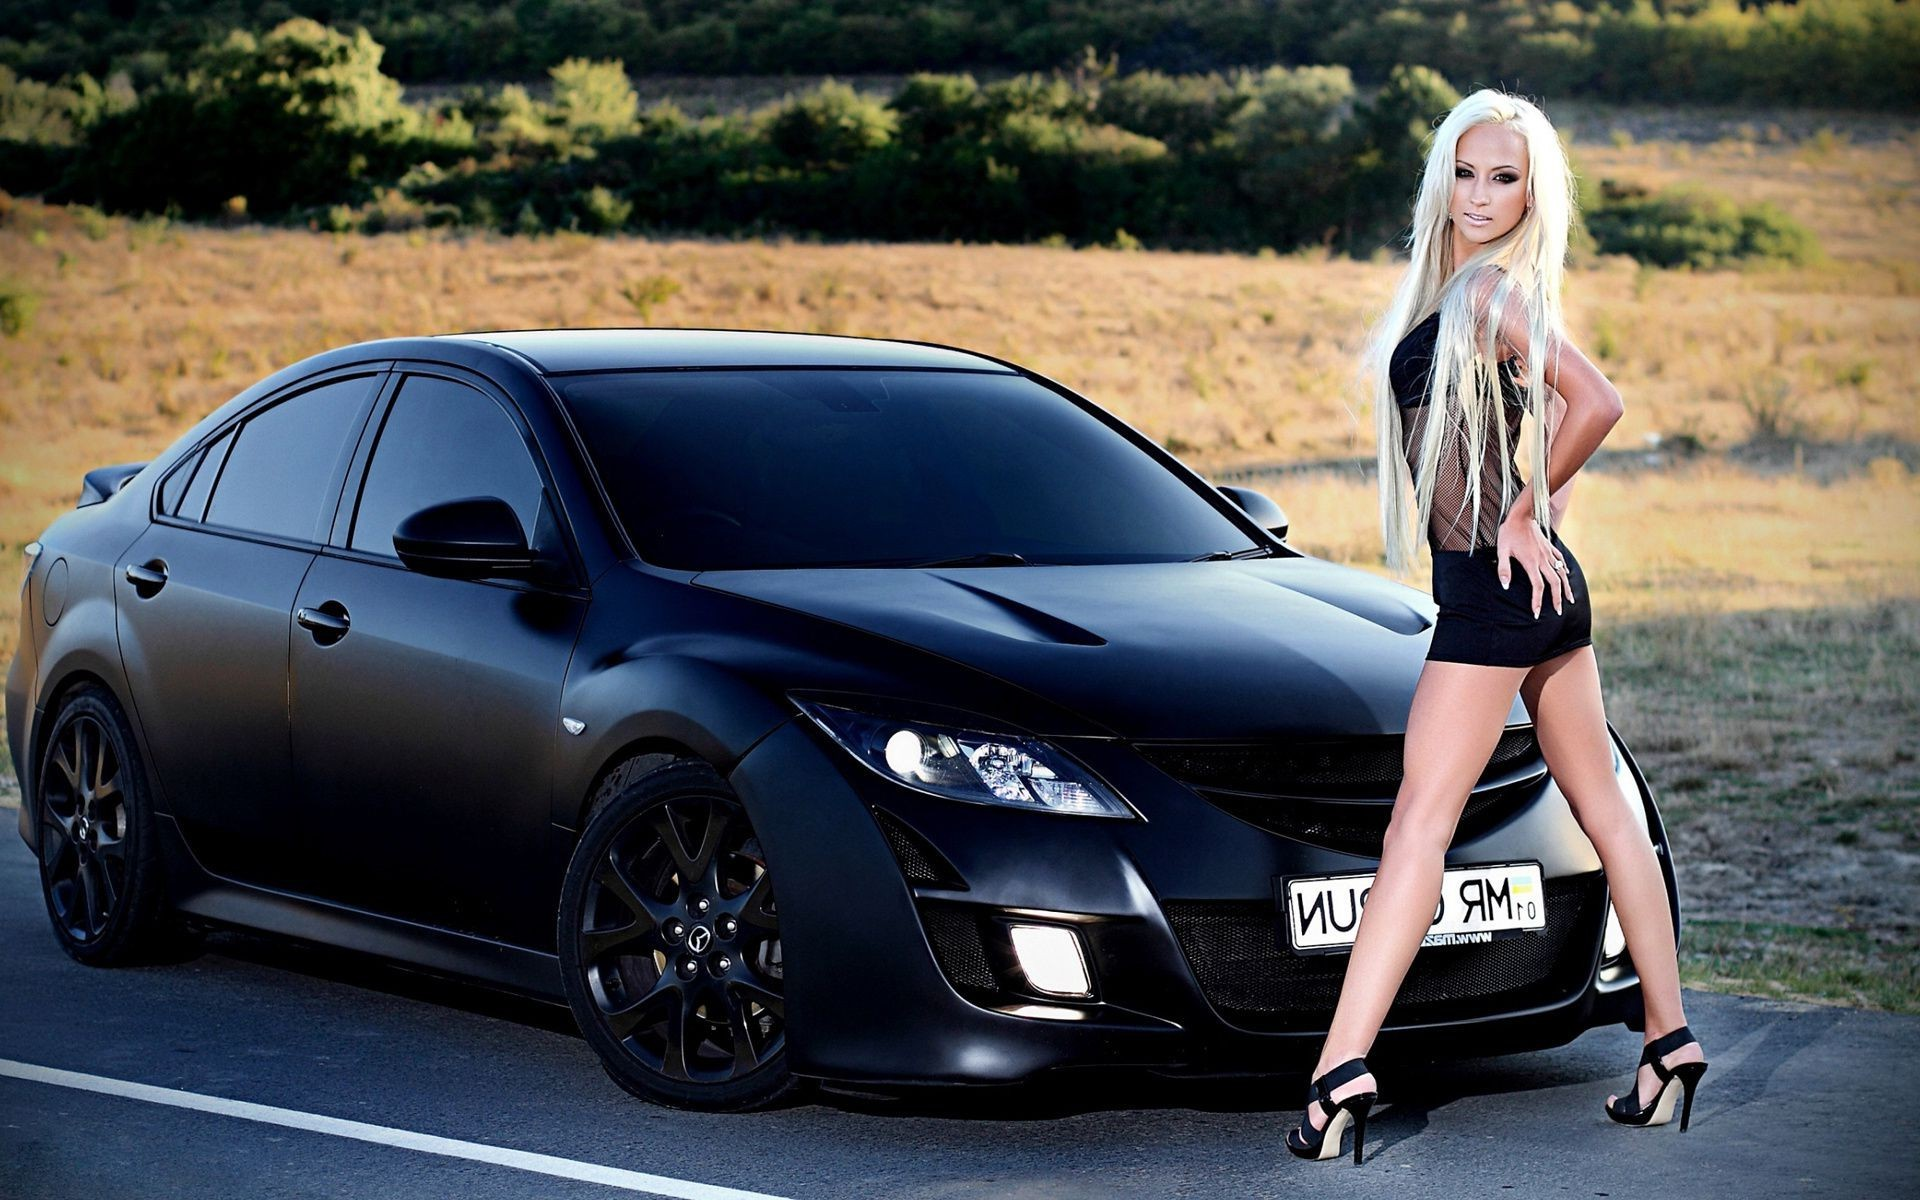 Sport Car Wallpaper With Girl: Cars And Girls Woman Fashion Car Girl Model Sexy Portrait